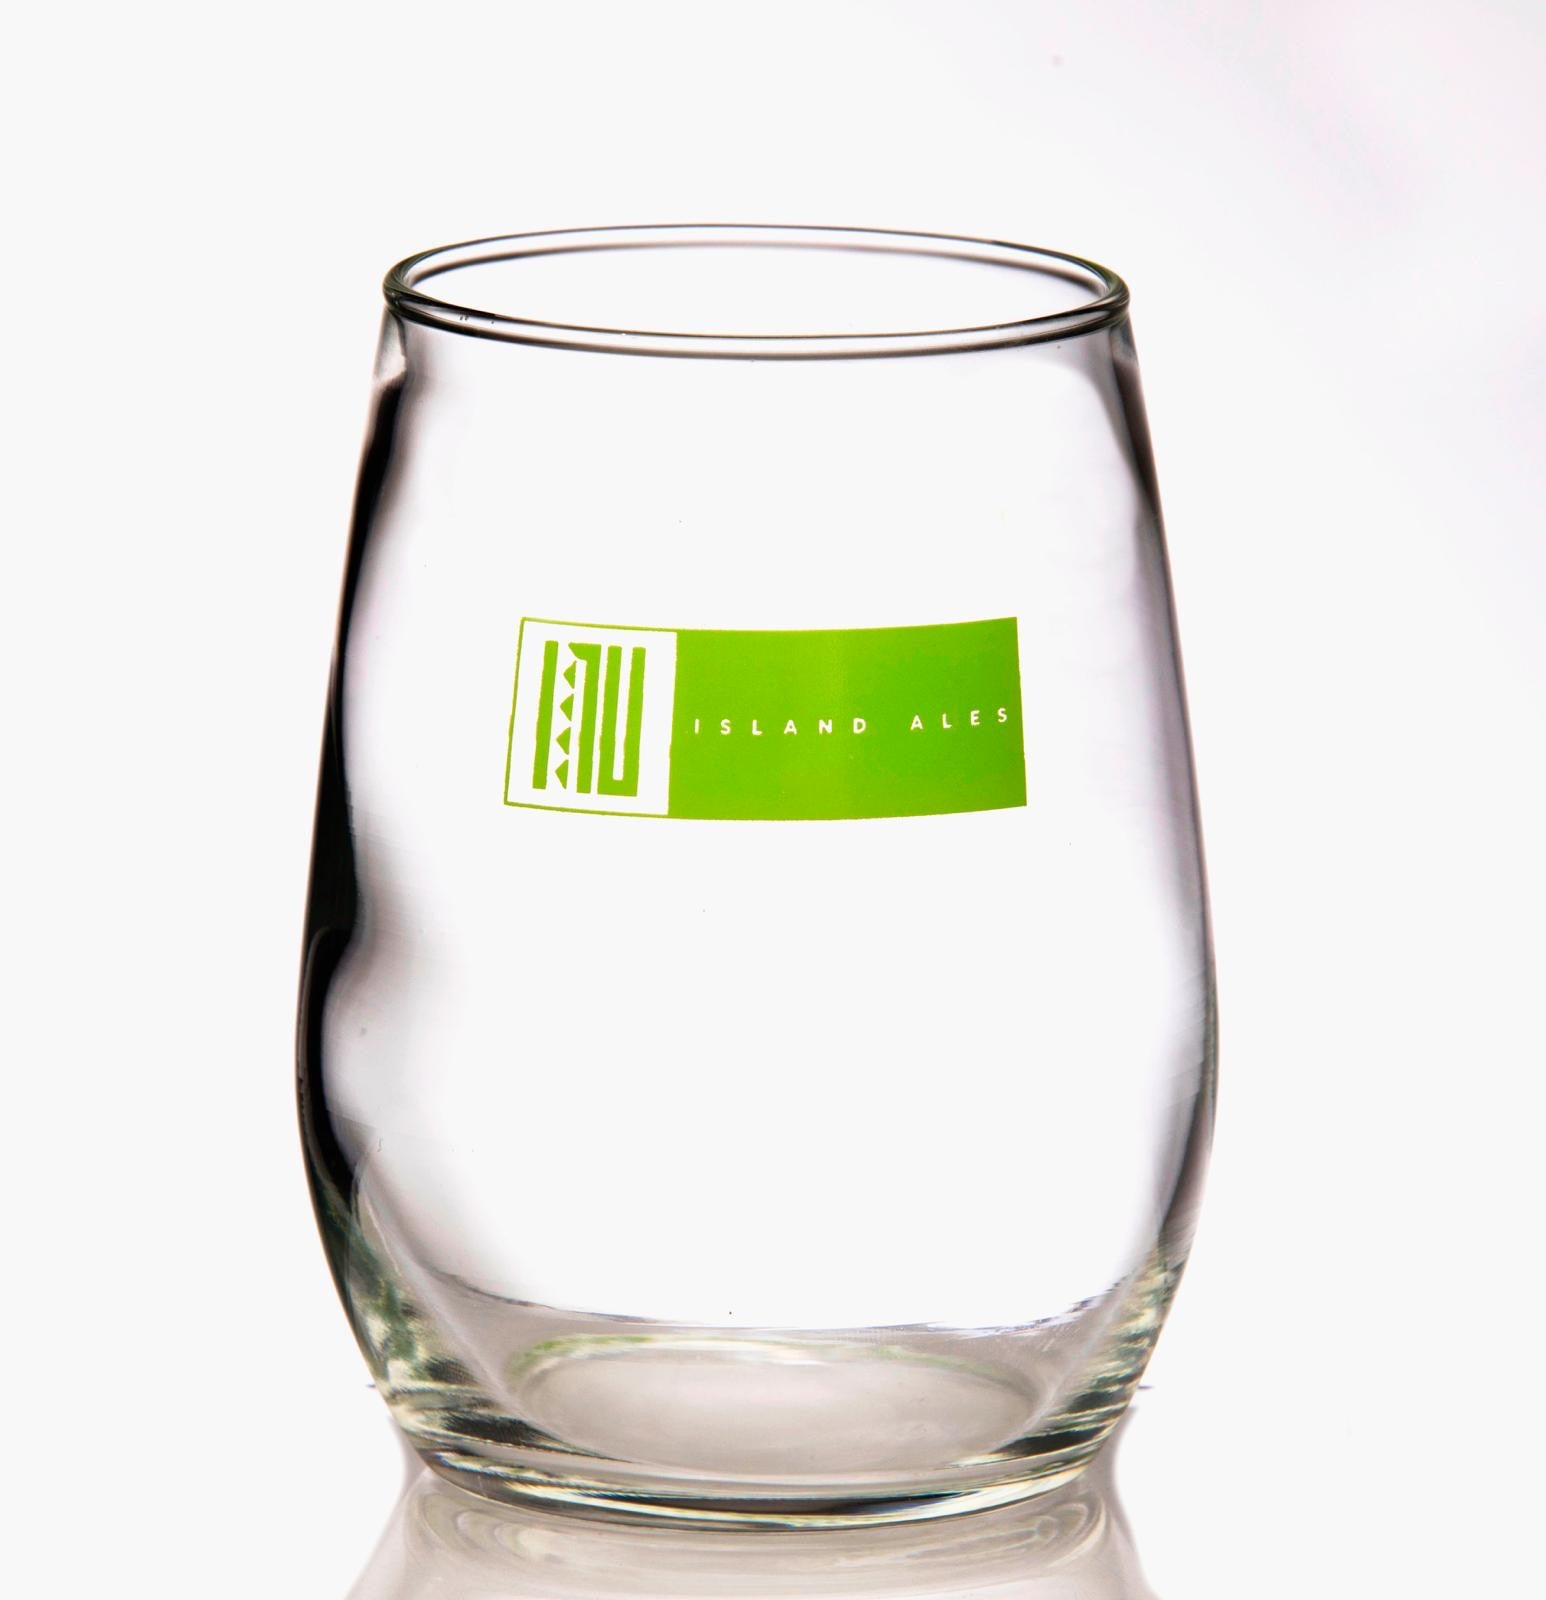 Steal Glass Catch Cracks 6oz (Lime Green)